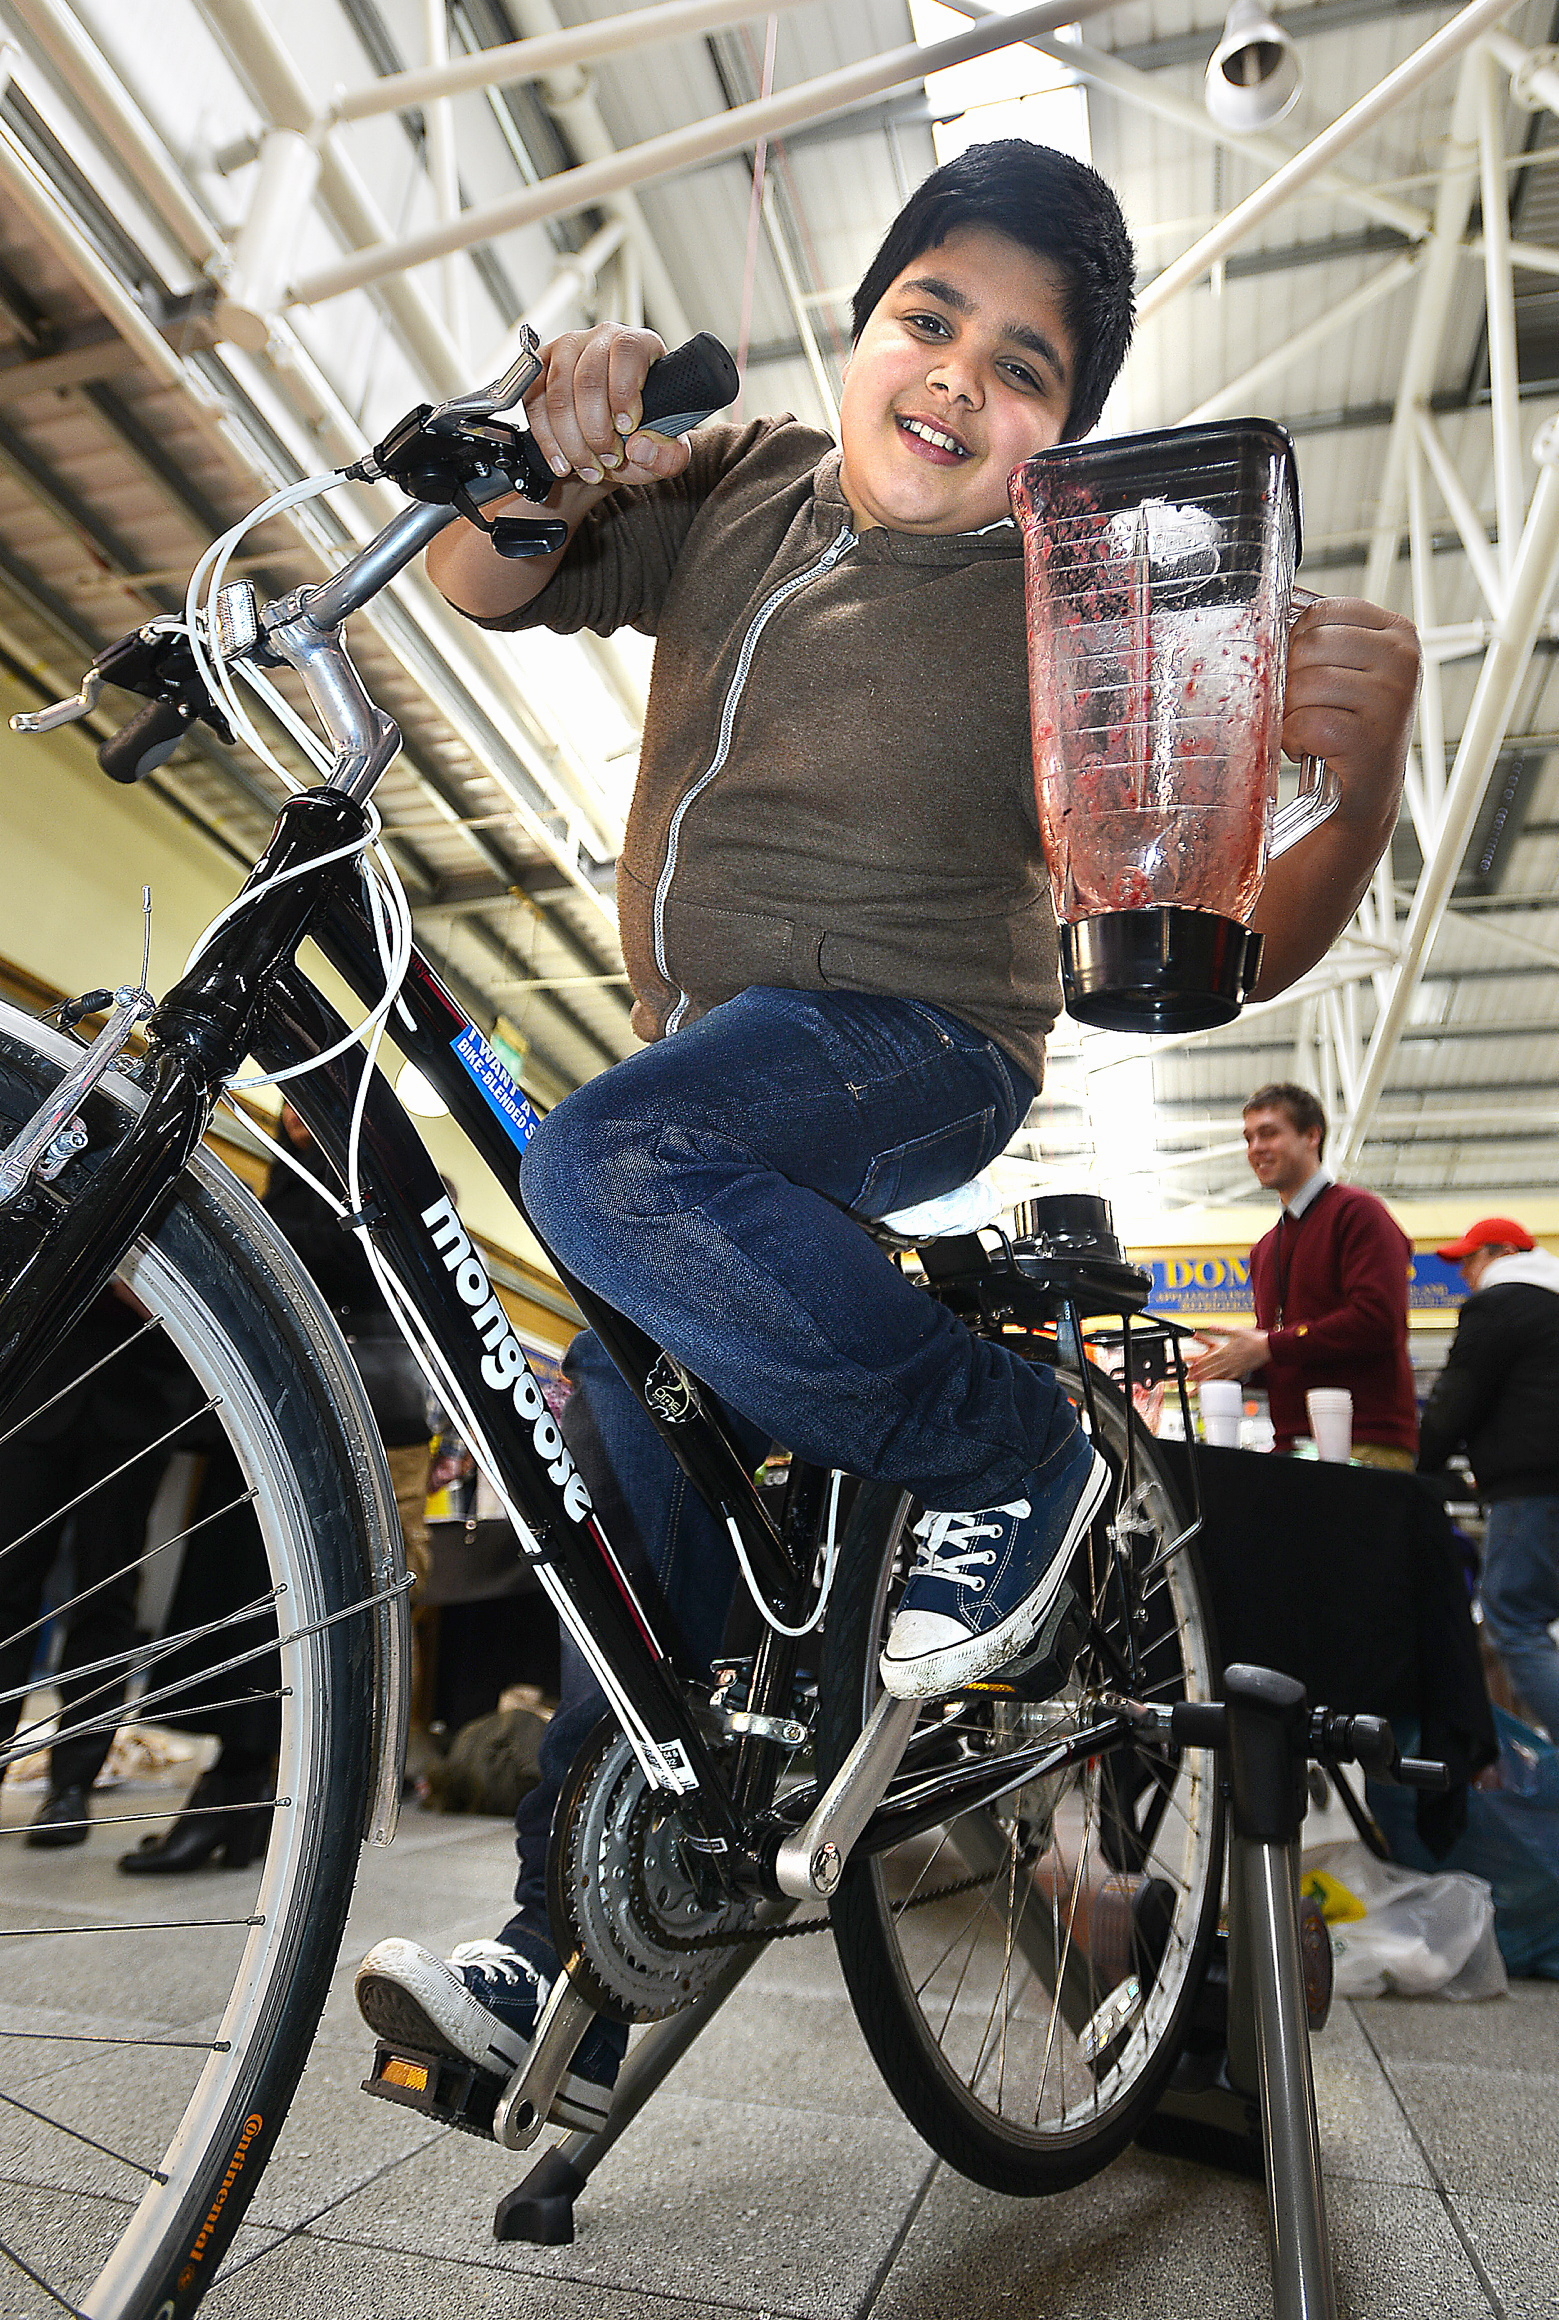 Pedal power means smoothie does it at Bradford market